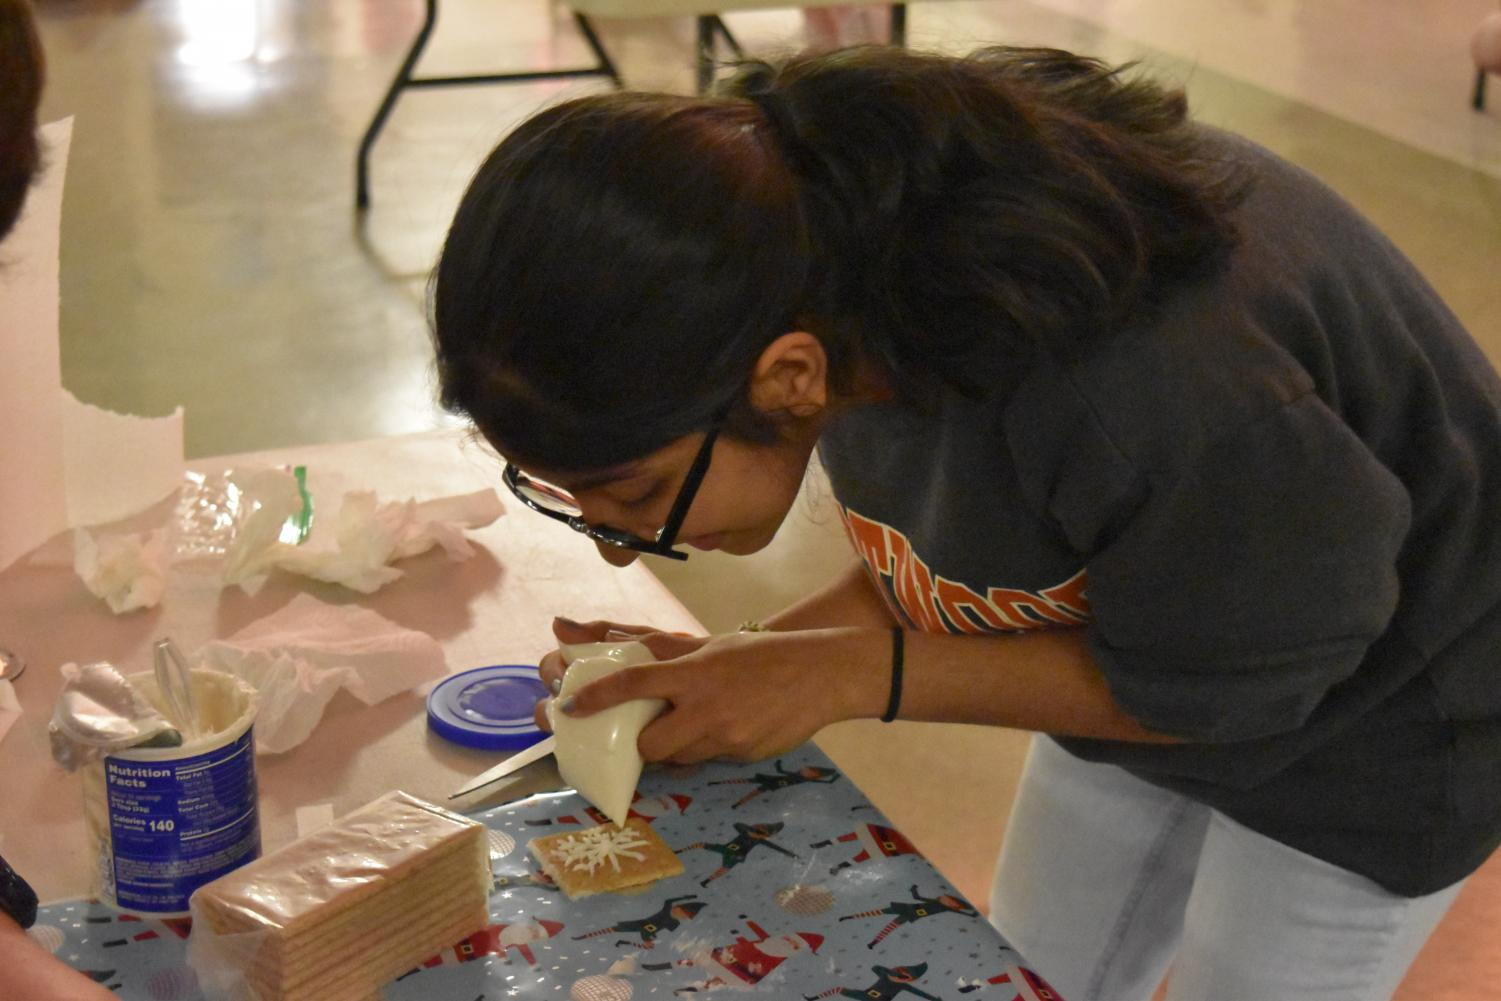 Vani+Shah+%2720+draws+a+snowflake+on+a+graham+cracker+with+icing.+Along+with+other+ambassadors%2C+she+participated+in+a+gingerbread+house+competition.